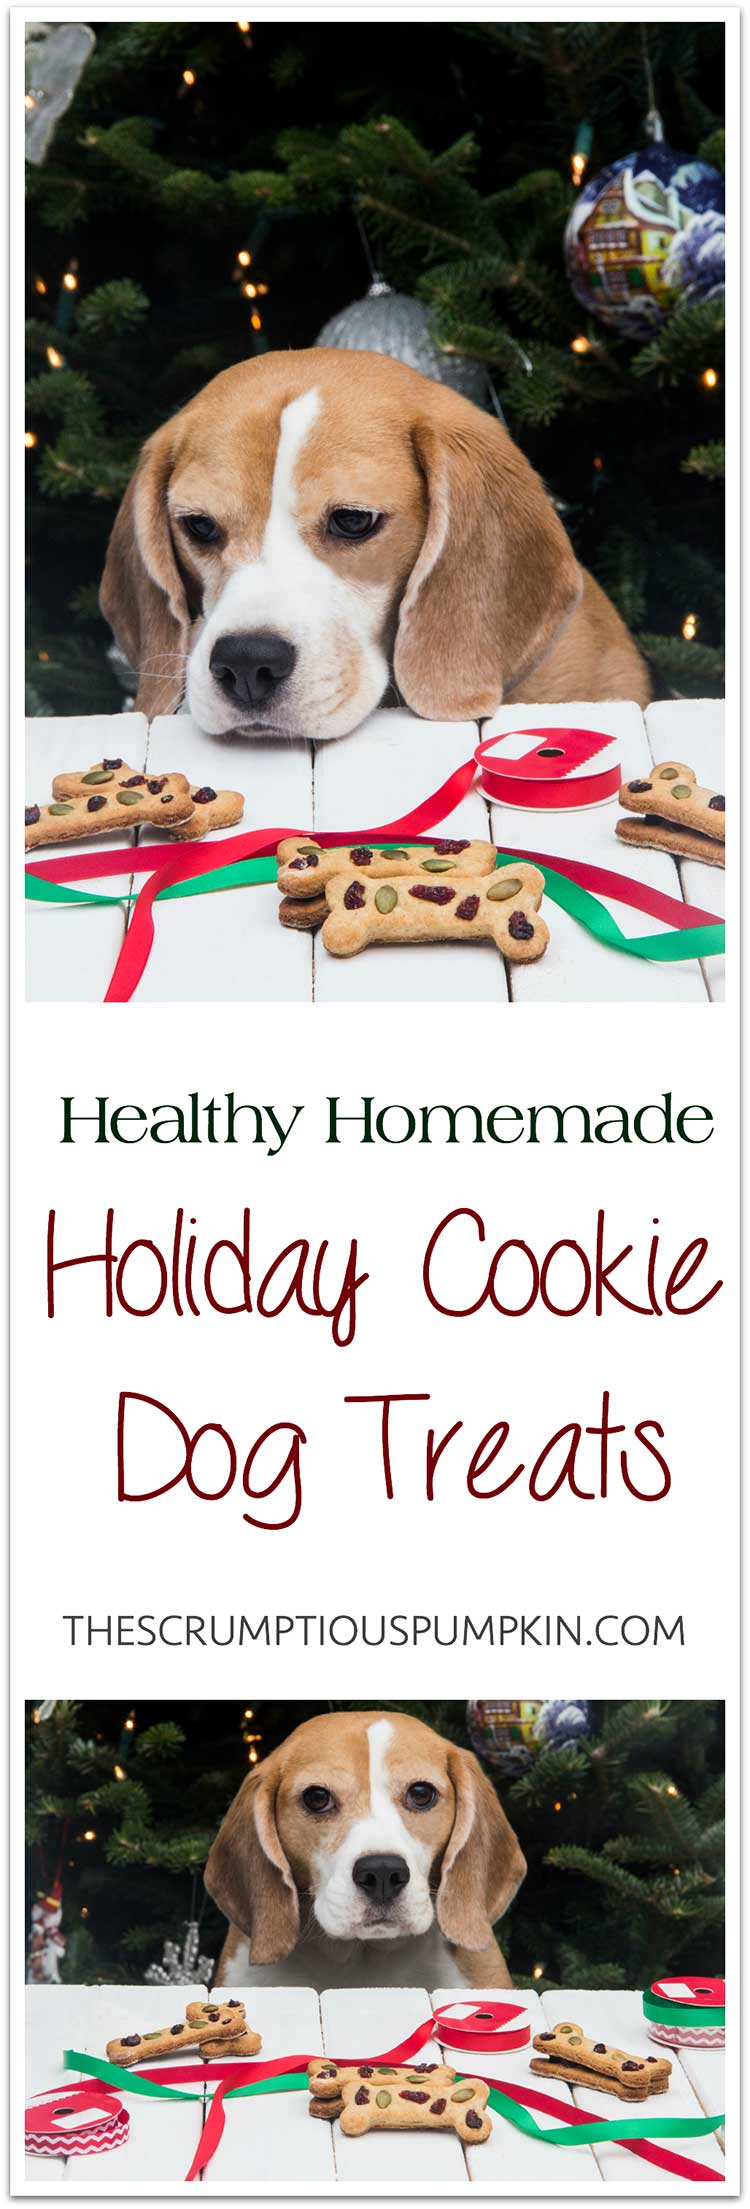 Healthy-Homemade-Holiday-Cookie-Dog-Treats